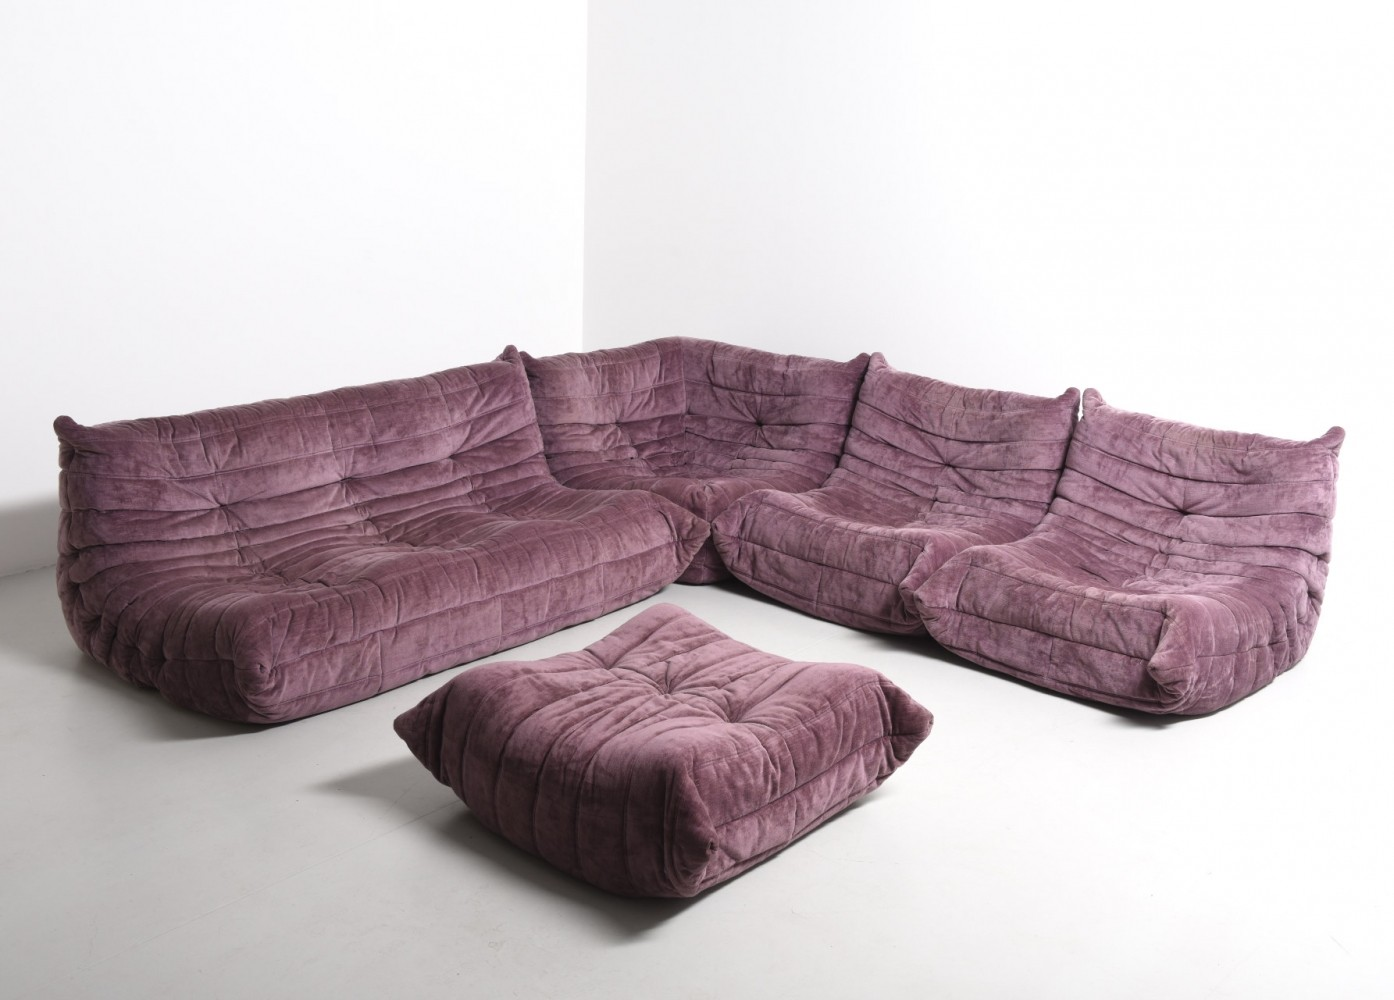 lilac togo seating group by michel ducaroy for ligne roset. Black Bedroom Furniture Sets. Home Design Ideas